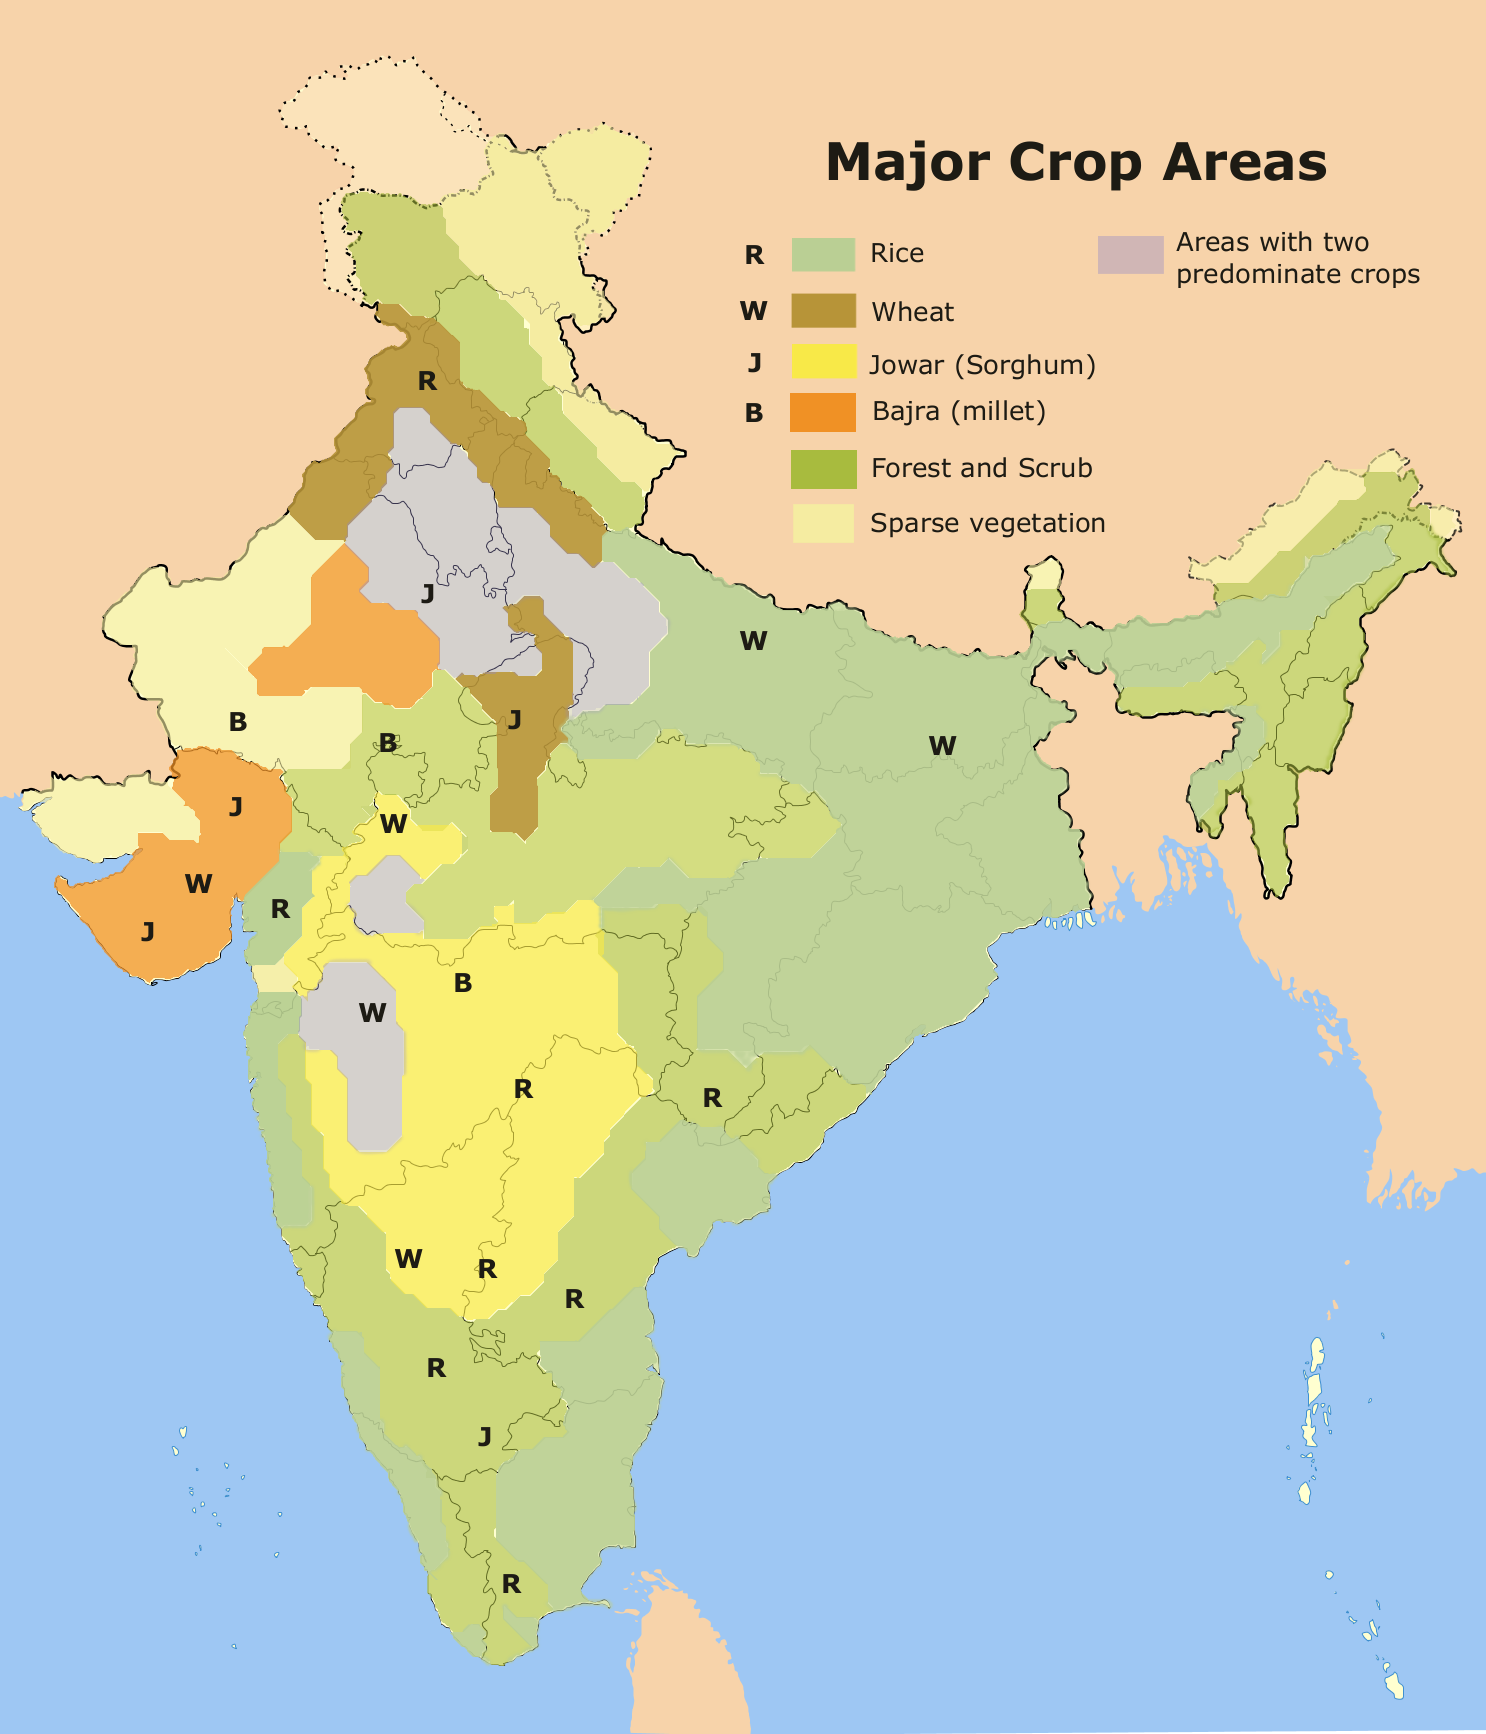 major crop agriculture map of india File Major Crop Areas India Png Wikimedia Commons major crop agriculture map of india